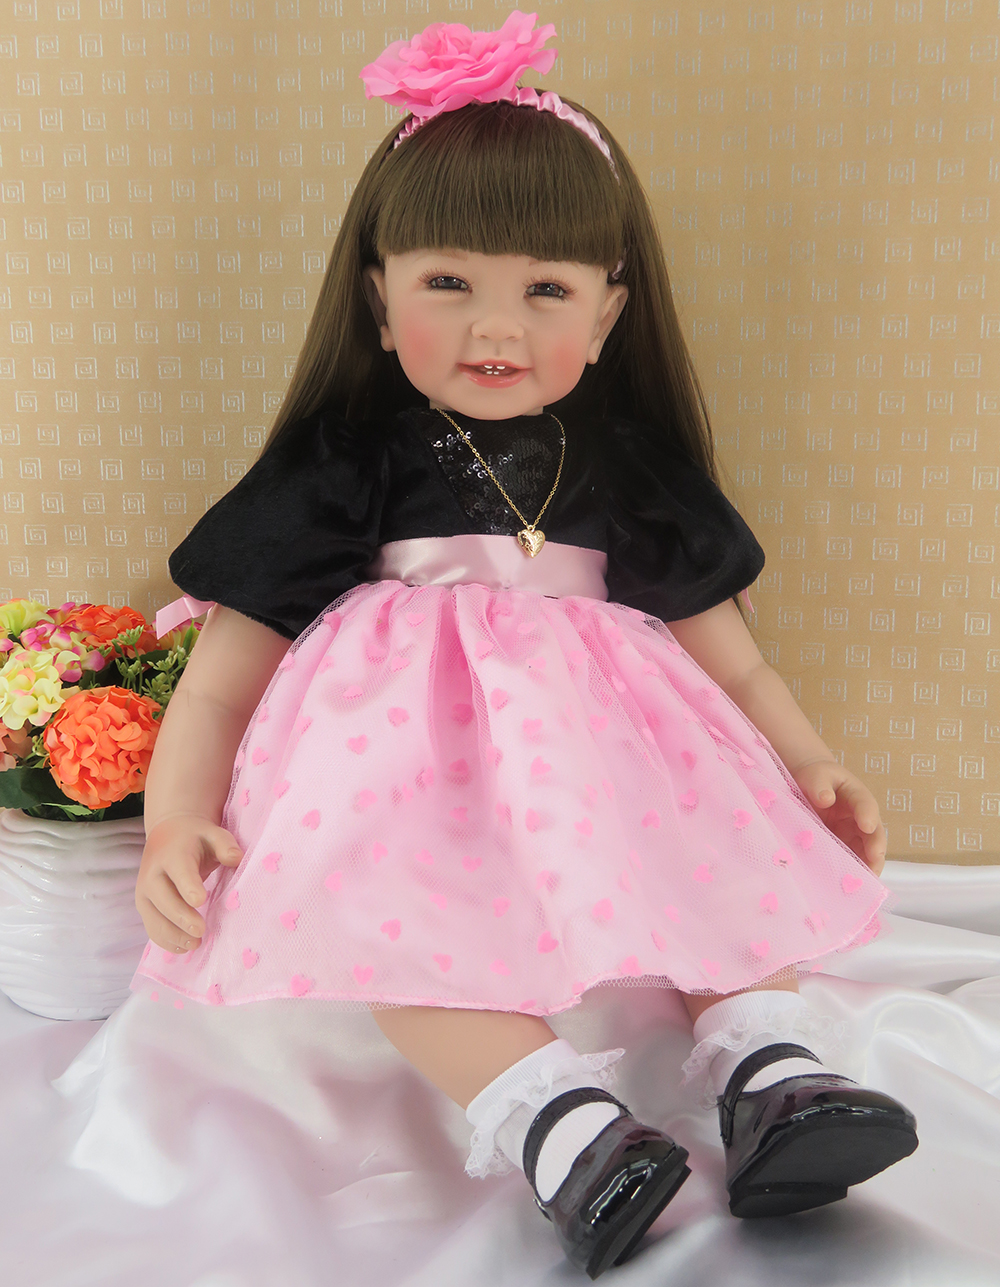 Pursue 24/60 cm Mouth Open Silicone Reborn Toddler Baby Girl Doll Toy Princess Doll Toys for Birthday Holiday Gift Bedtime Play silicone reborn toddler baby doll toys for girl 52cm lifelike princess dolls play house toy birthday christmas gift brinquedods